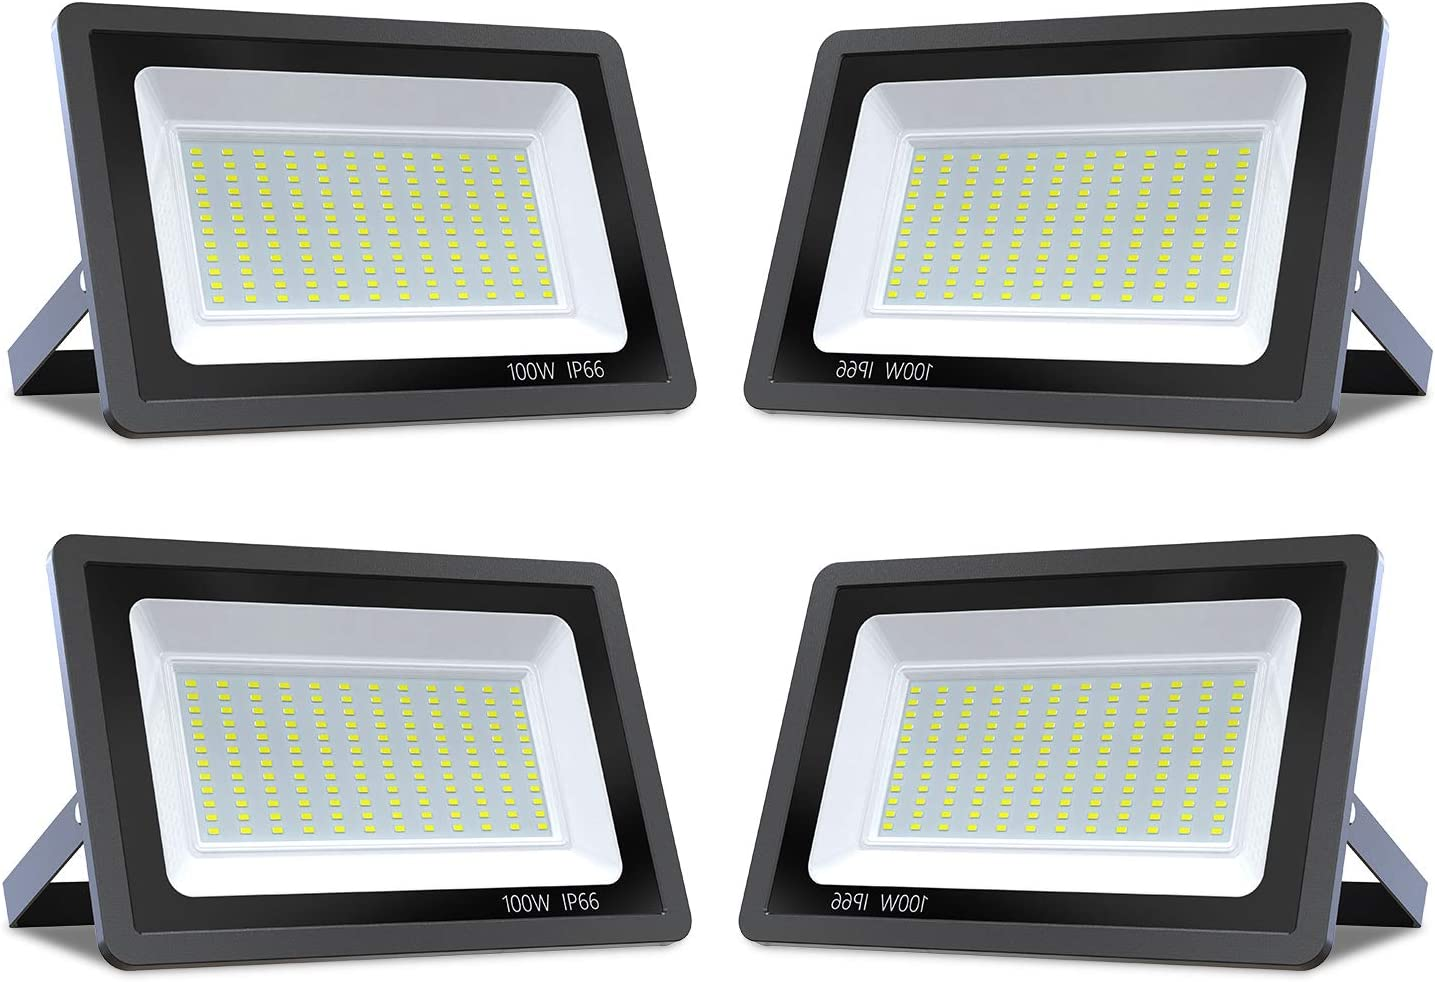 TURBO SII 4PCS Super Bright 100W LED Flood Light, 10000lm Outdoor Landscape Flood Light, Security Light, 6000-6500K, Work for Garage, Garden, Lawn,Yard and Playground (Cold White)